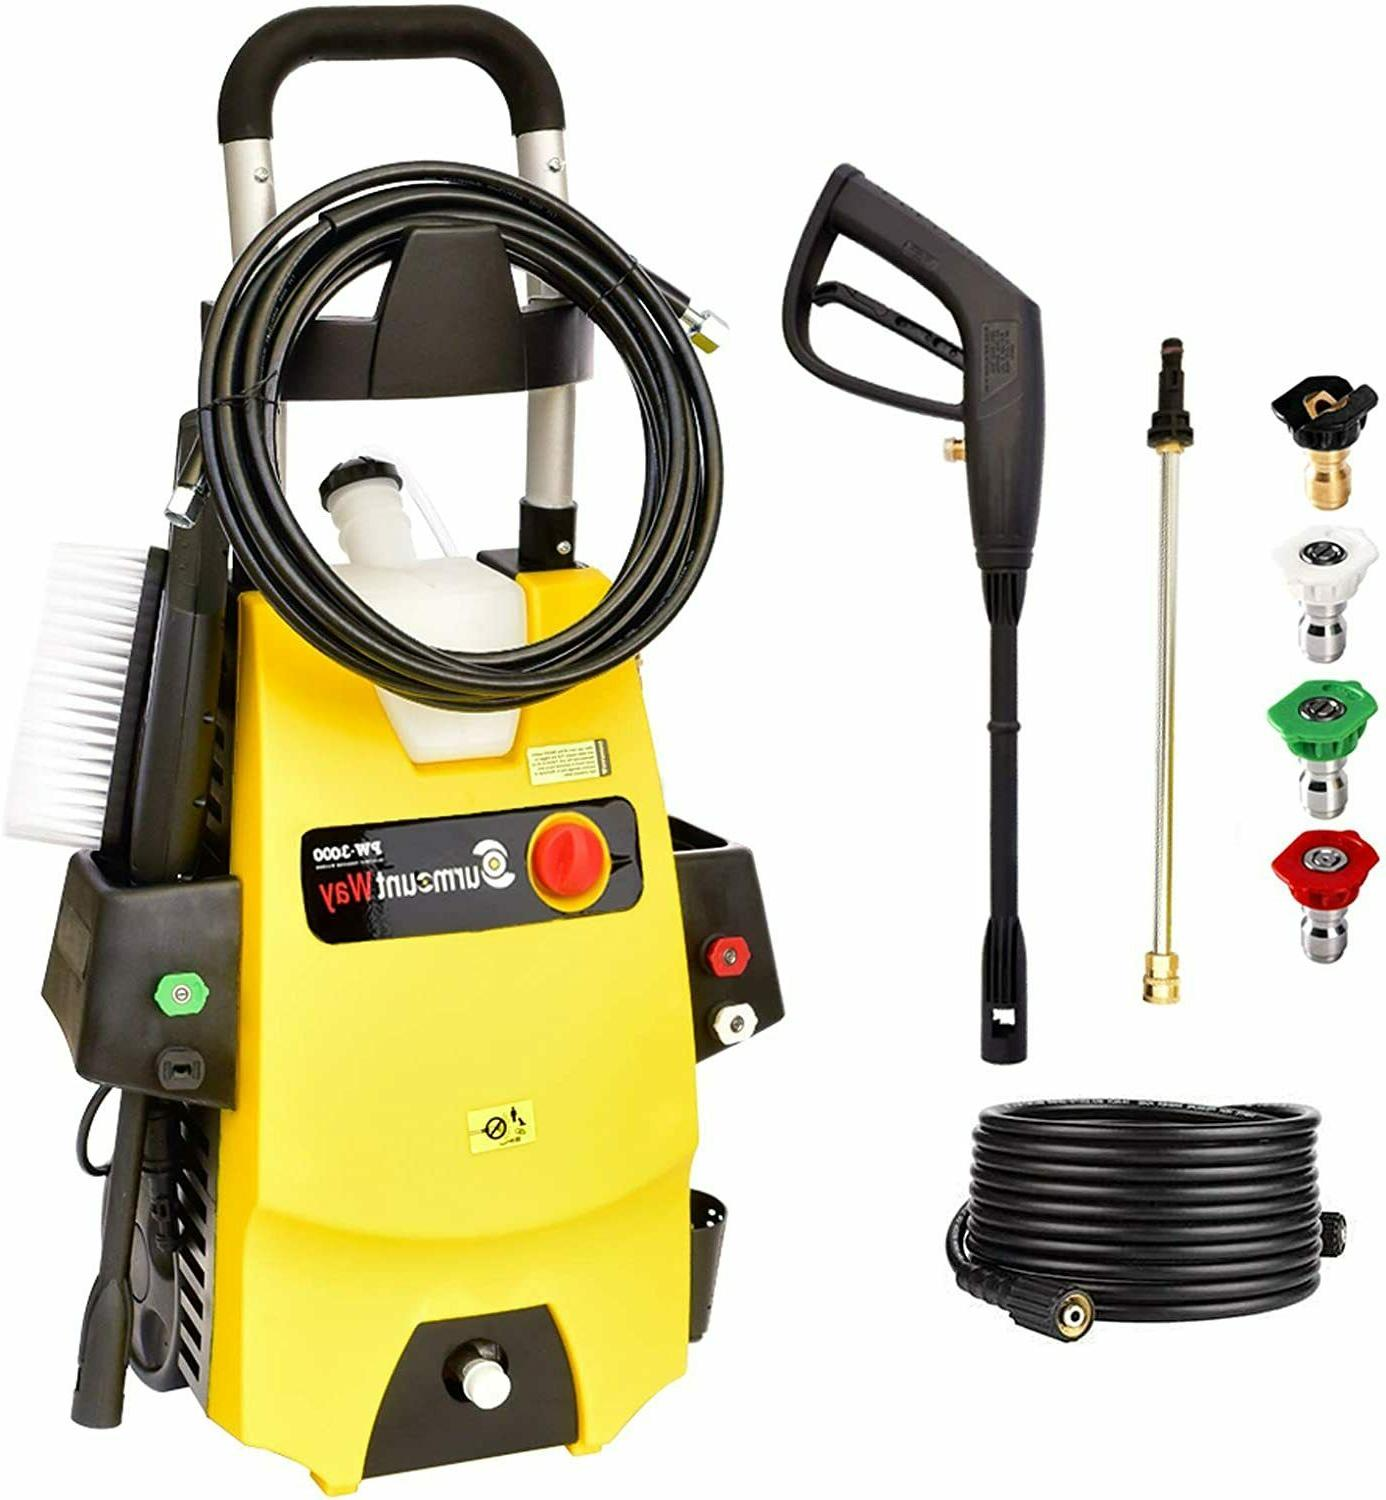 SurmountWay Pressure Washer, 1.6GPM Washer